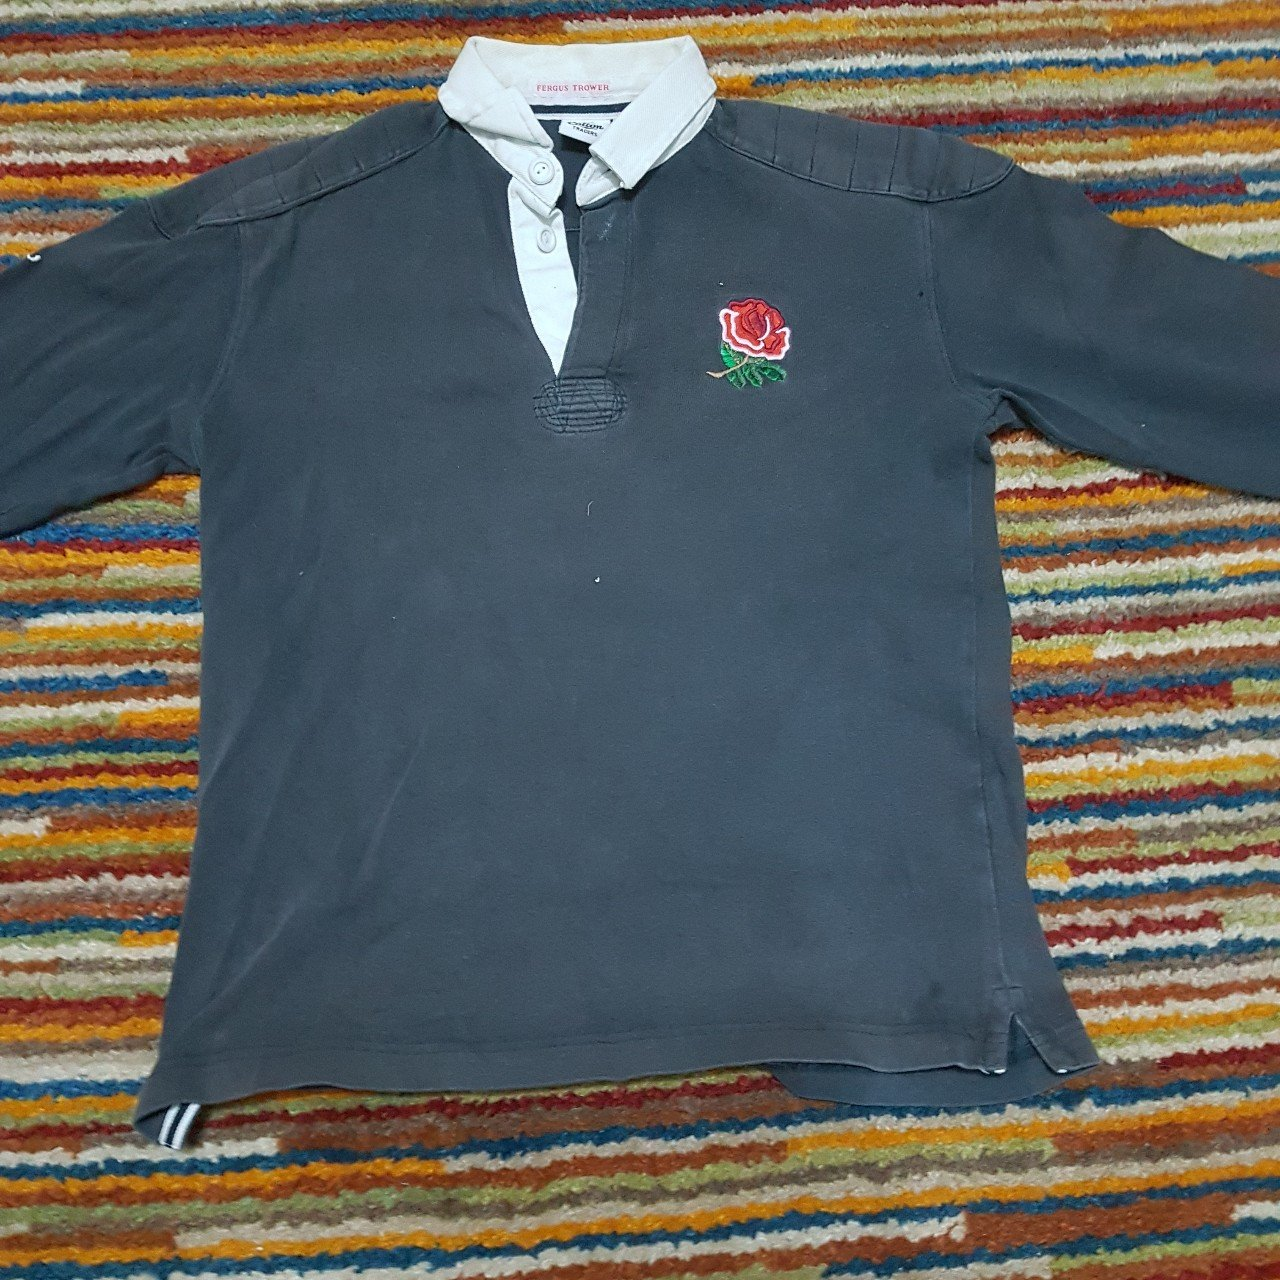 ca569996508 England Rugby Shirts Cotton Traders - DREAMWORKS